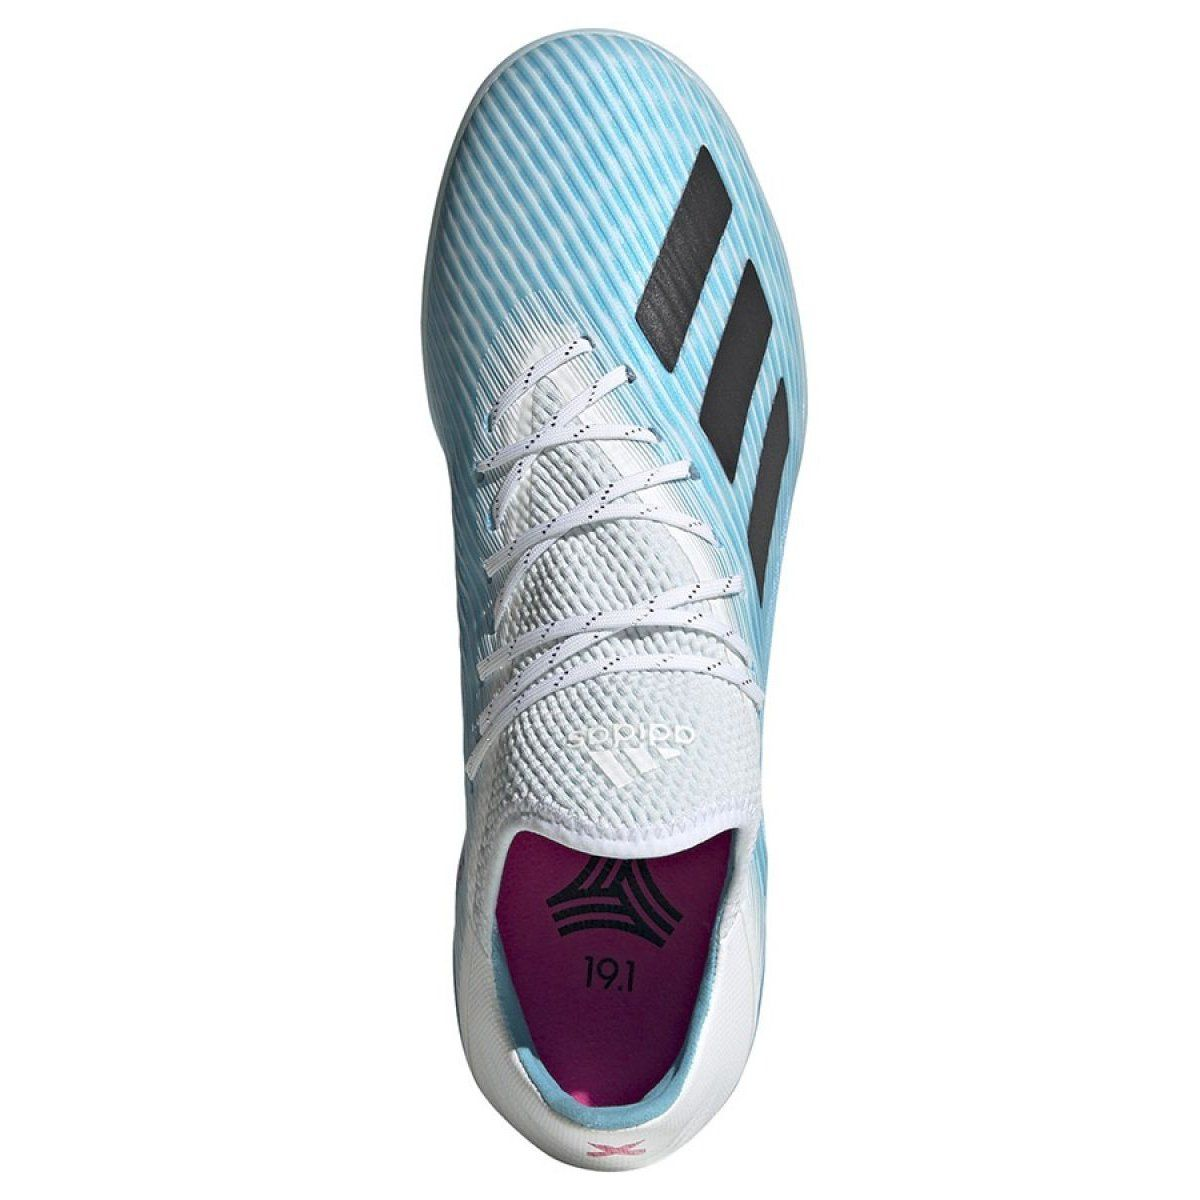 Indoor Shoes Adidas X 19 1 In M G25754 Blue Blue Adidas Chuteiras